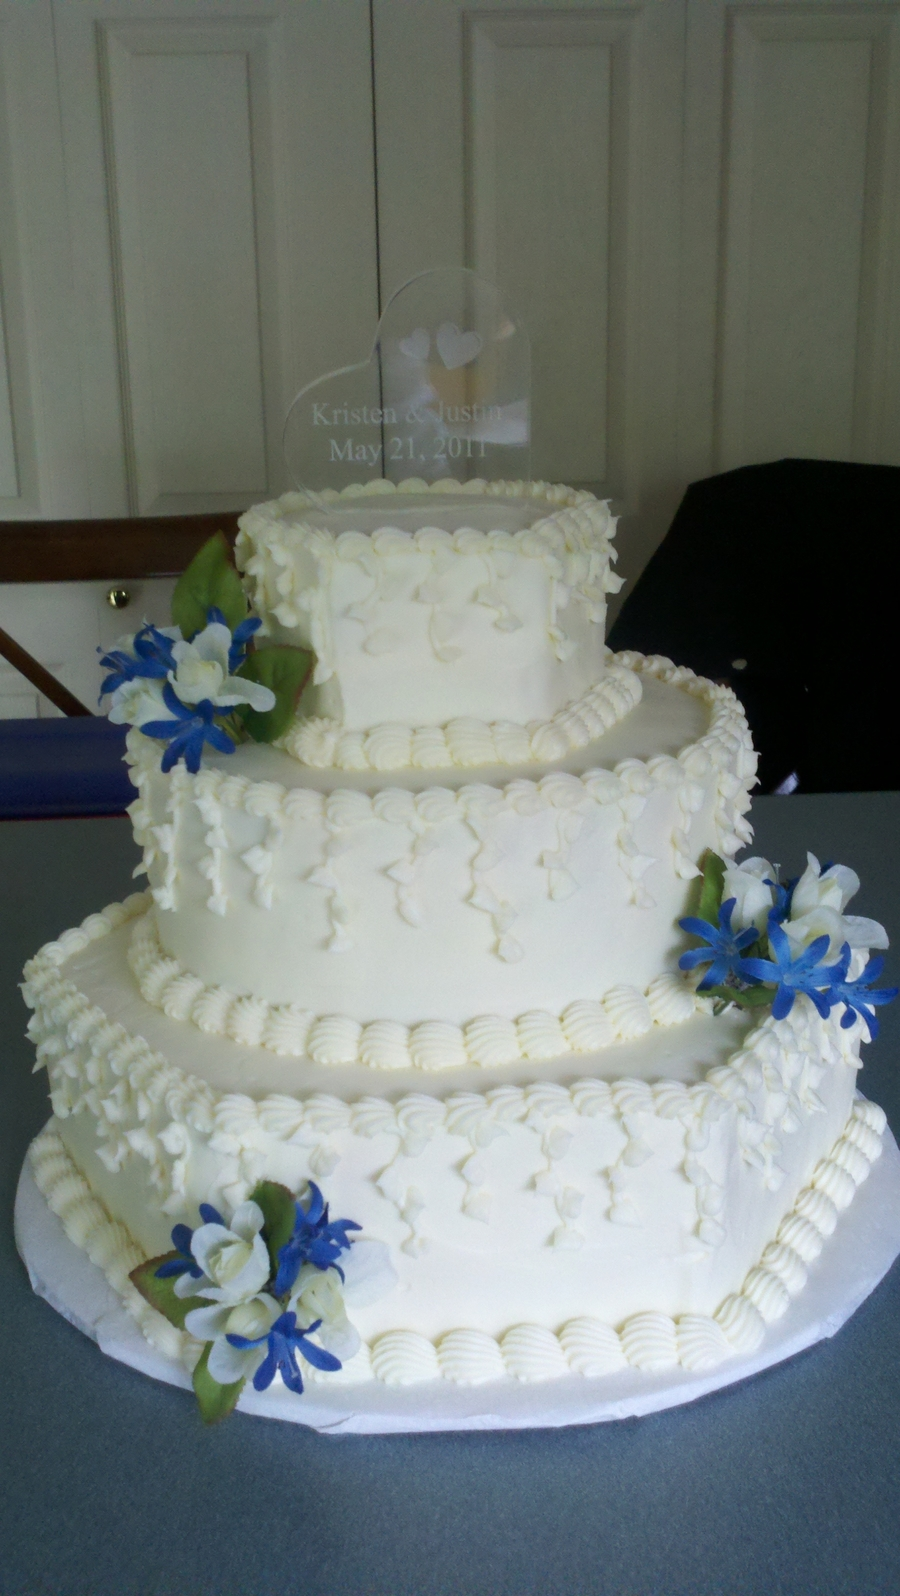 A Very Hot May Day Wedding on Cake Central